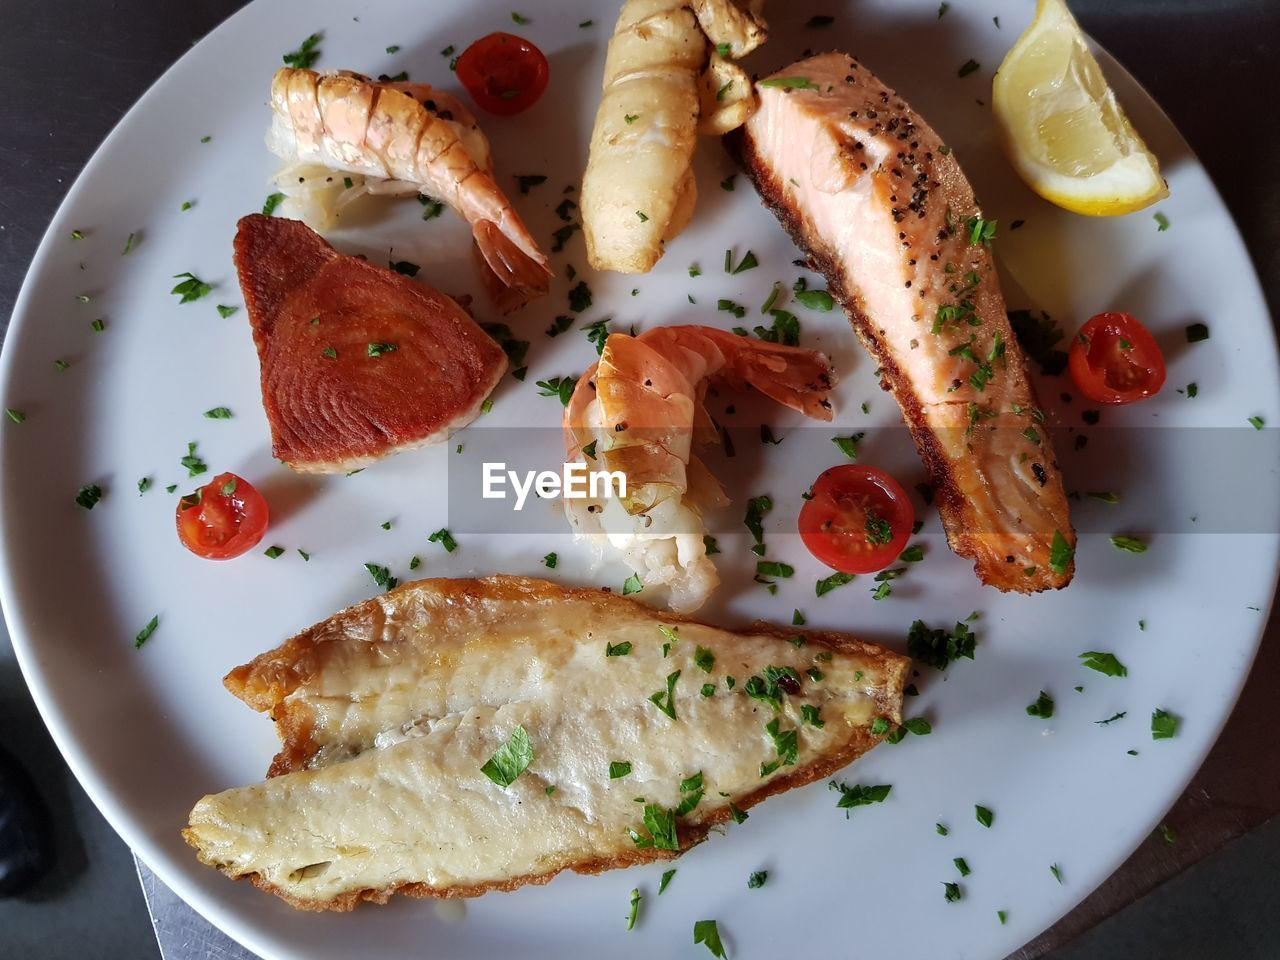 food, food and drink, plate, ready-to-eat, freshness, indoors, healthy eating, serving size, still life, wellbeing, no people, high angle view, fruit, vegetable, directly above, close-up, table, seafood, bread, appetizer, garnish, snack